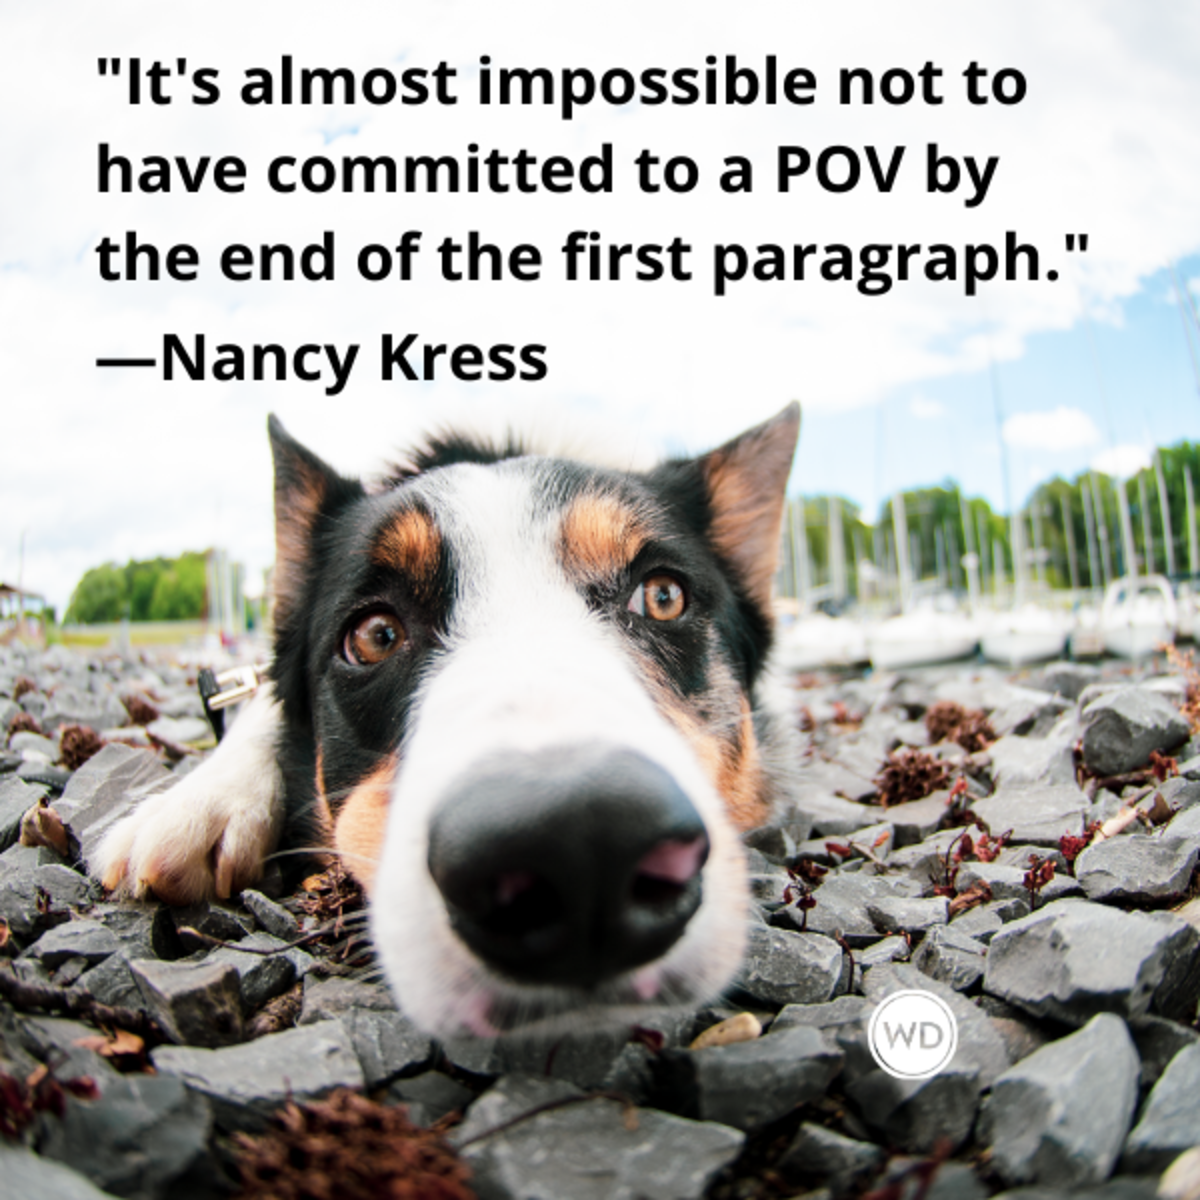 nancy_kress_quotes_its_almost_impossible_not_to_have_committed_to_a_pov_by_the_end_of_the_first_paragraph_writing_advice_with_dogs